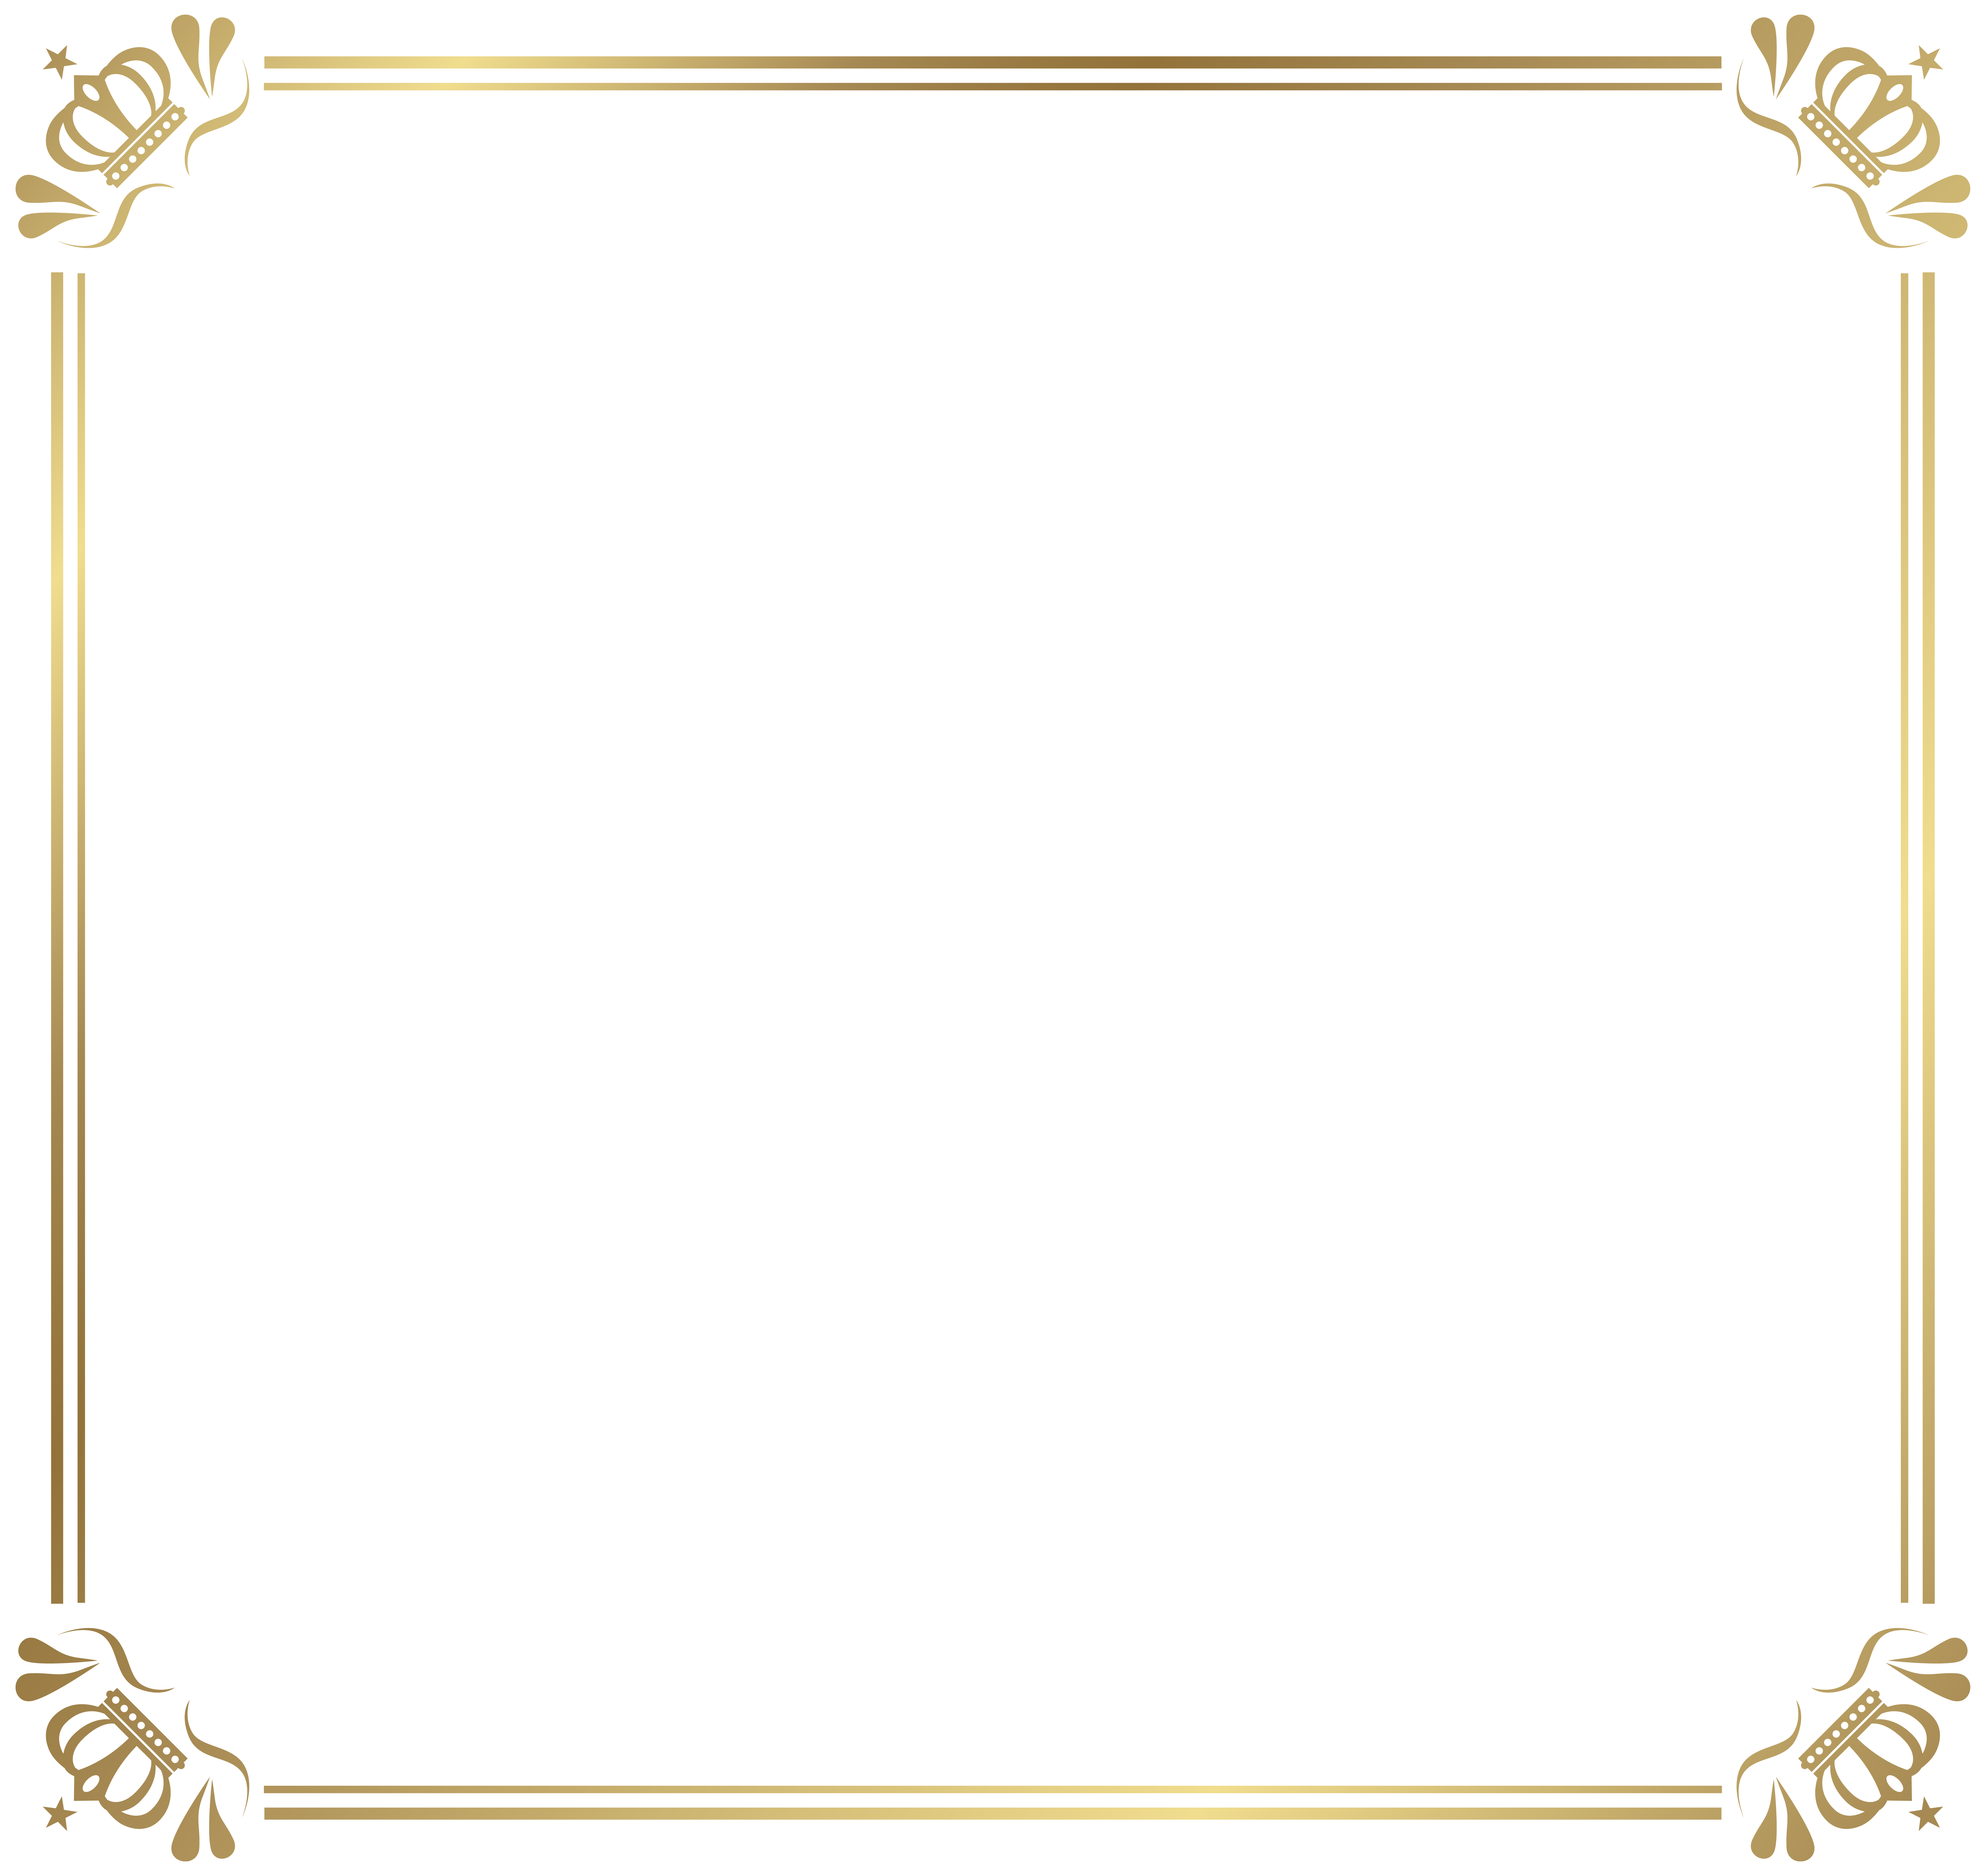 With crowns image gallery. Frame border png graphic